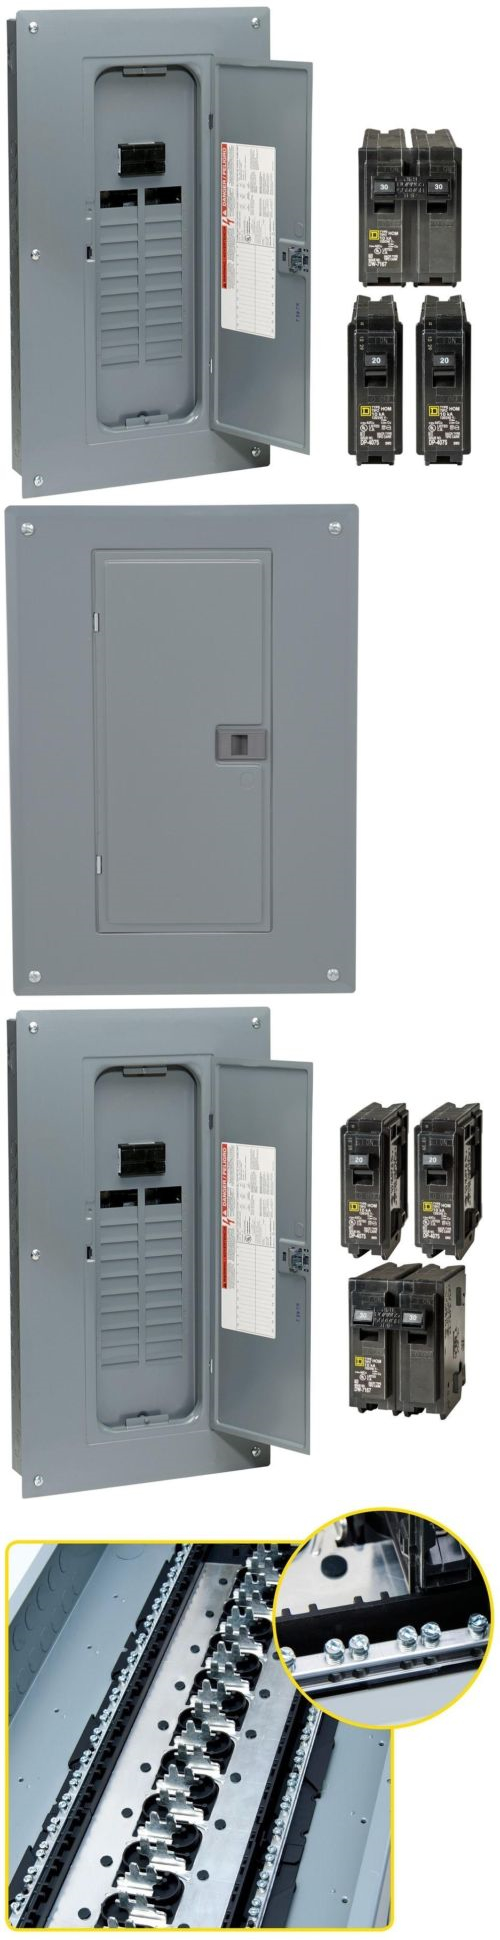 fuse box cost to replace wiring diagrams mashups co Square D Fuse Box circuit breakers and fuse boxes 20596 square d 100 amp 20 40 square d fuse box